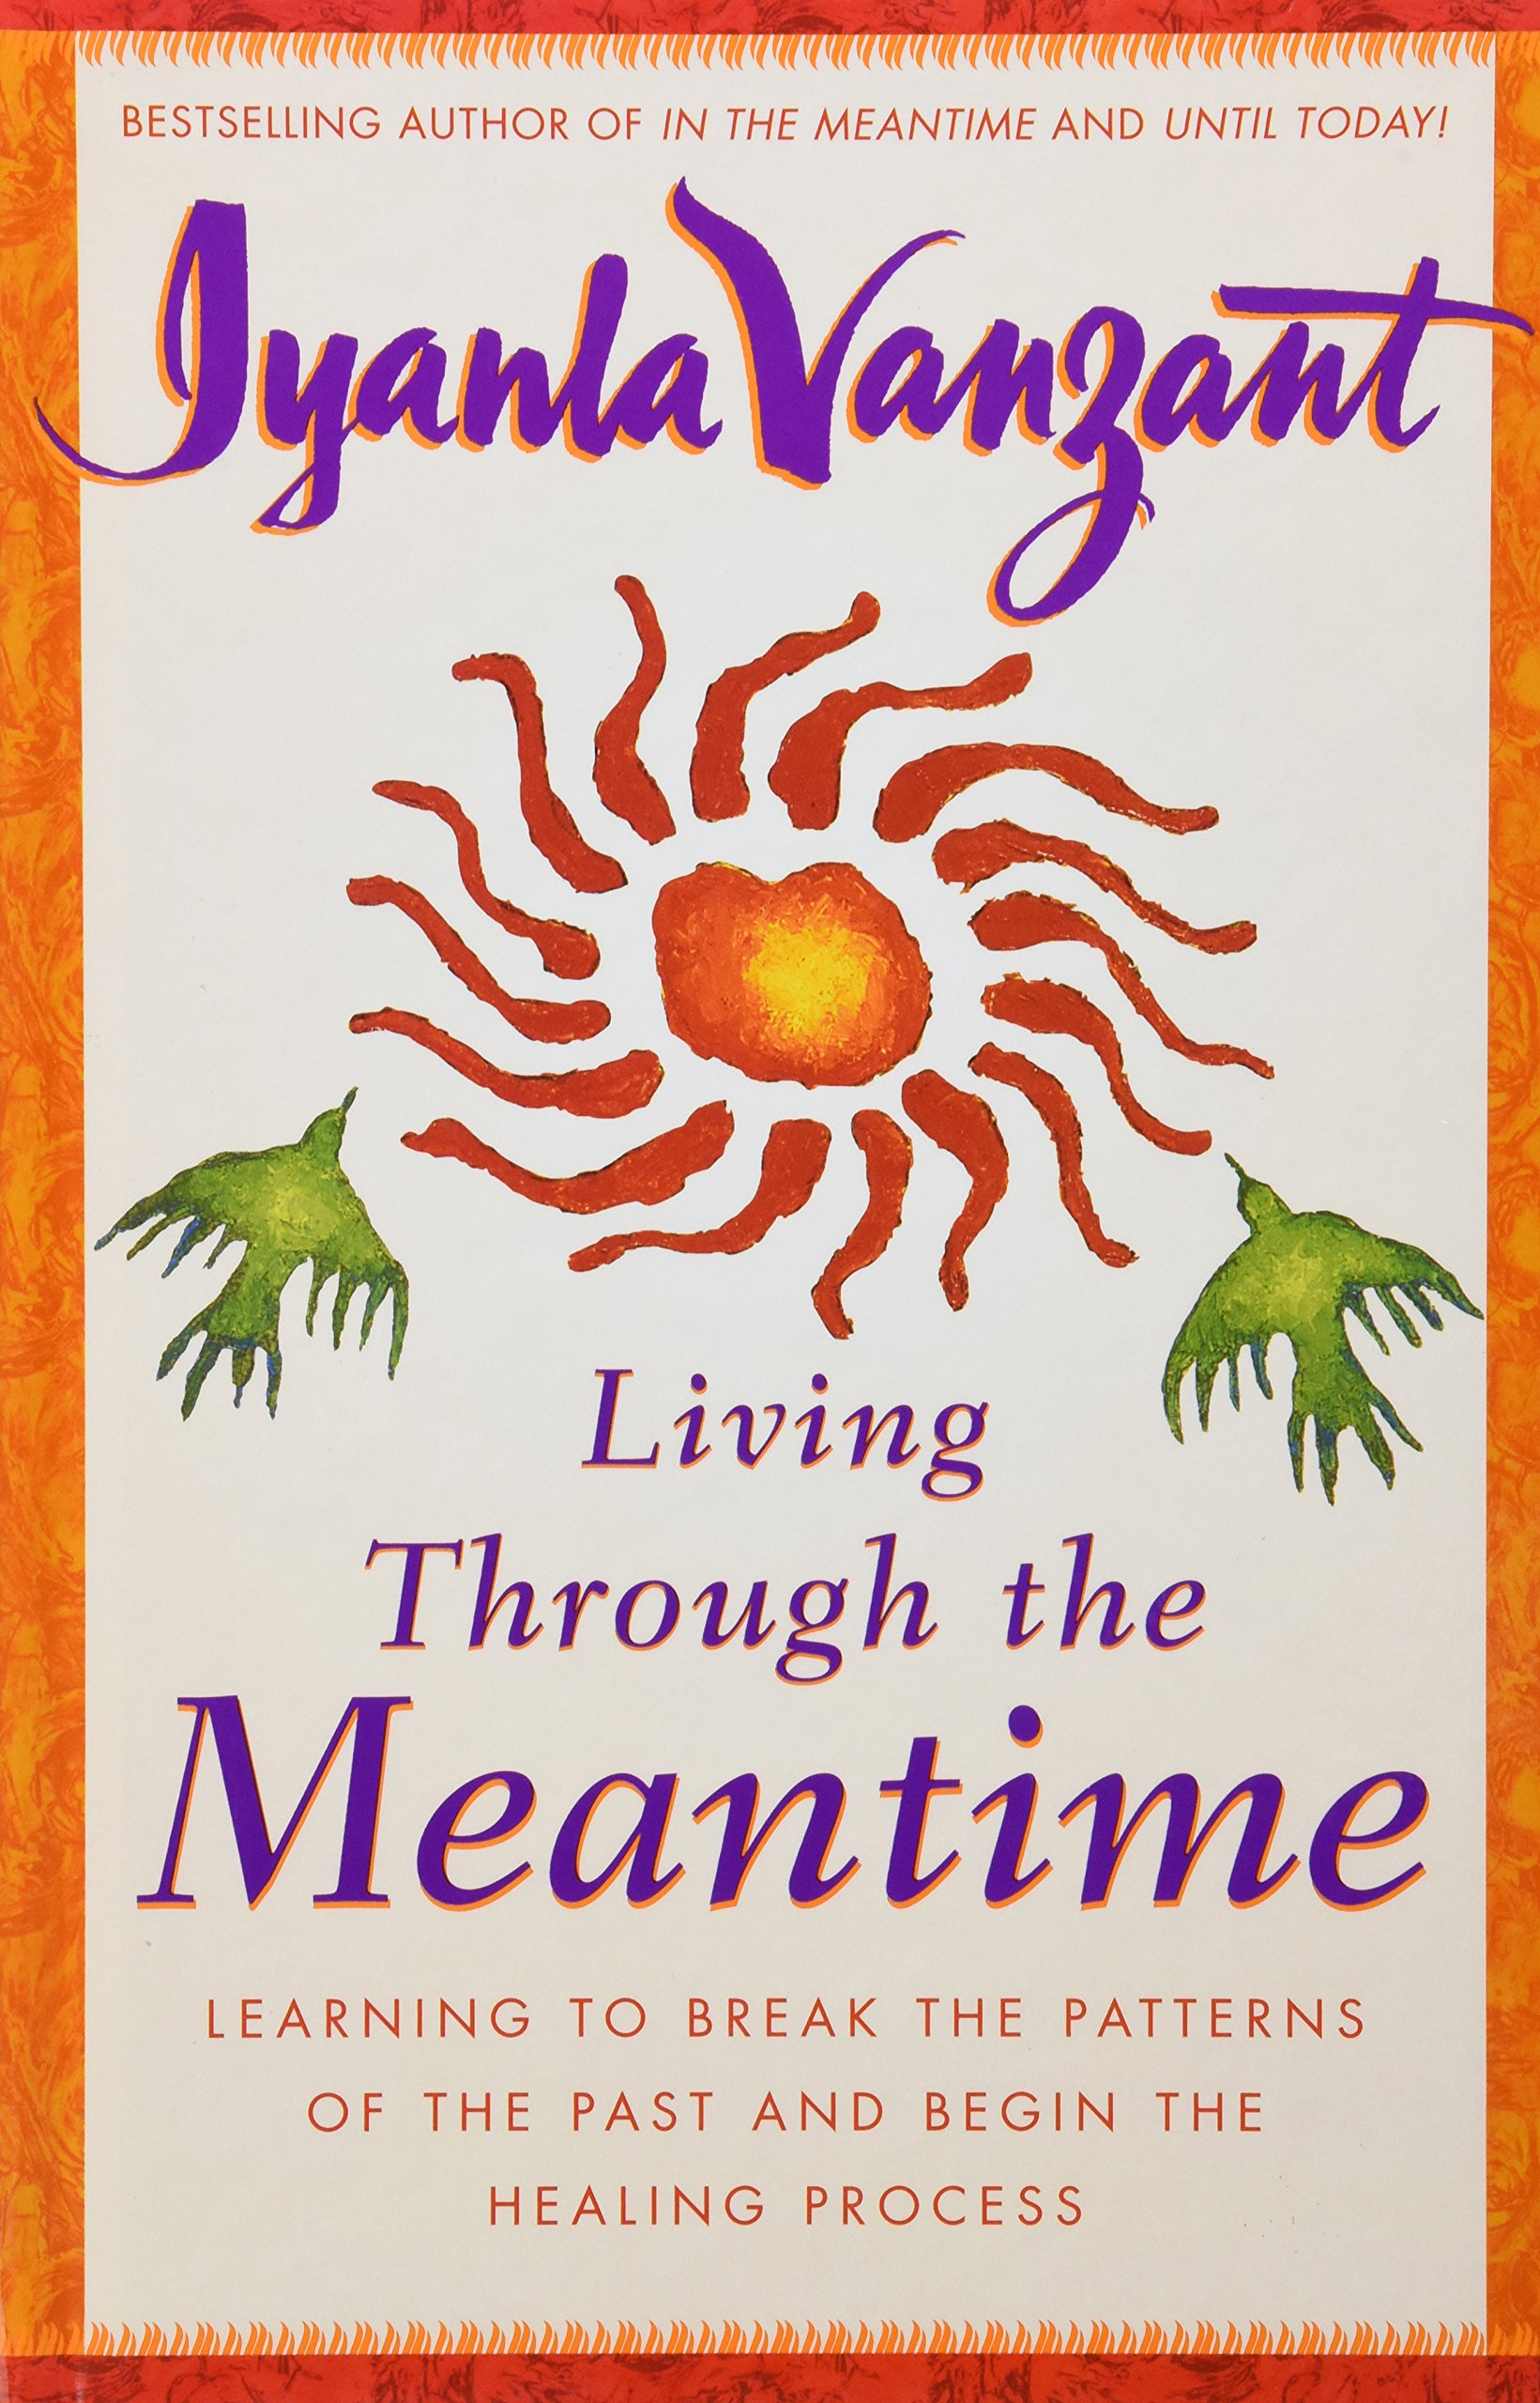 Image OfLiving Through The Meantime: Learning To Break The Patterns Of The Past And Begin The Healing Process